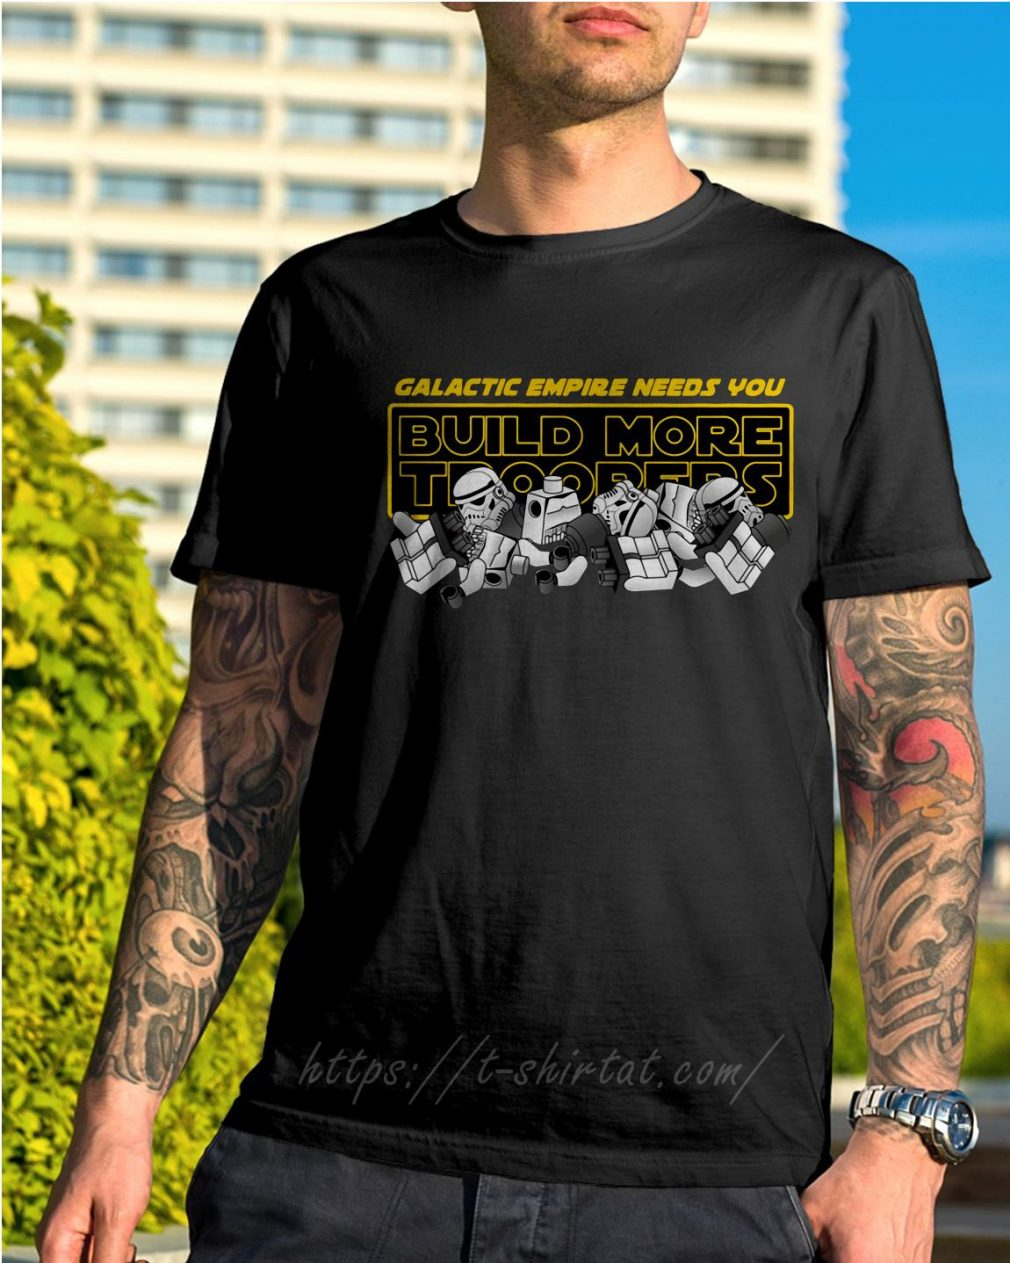 Star Wars stormtroopers galactic empire needs you build more troopers shirt